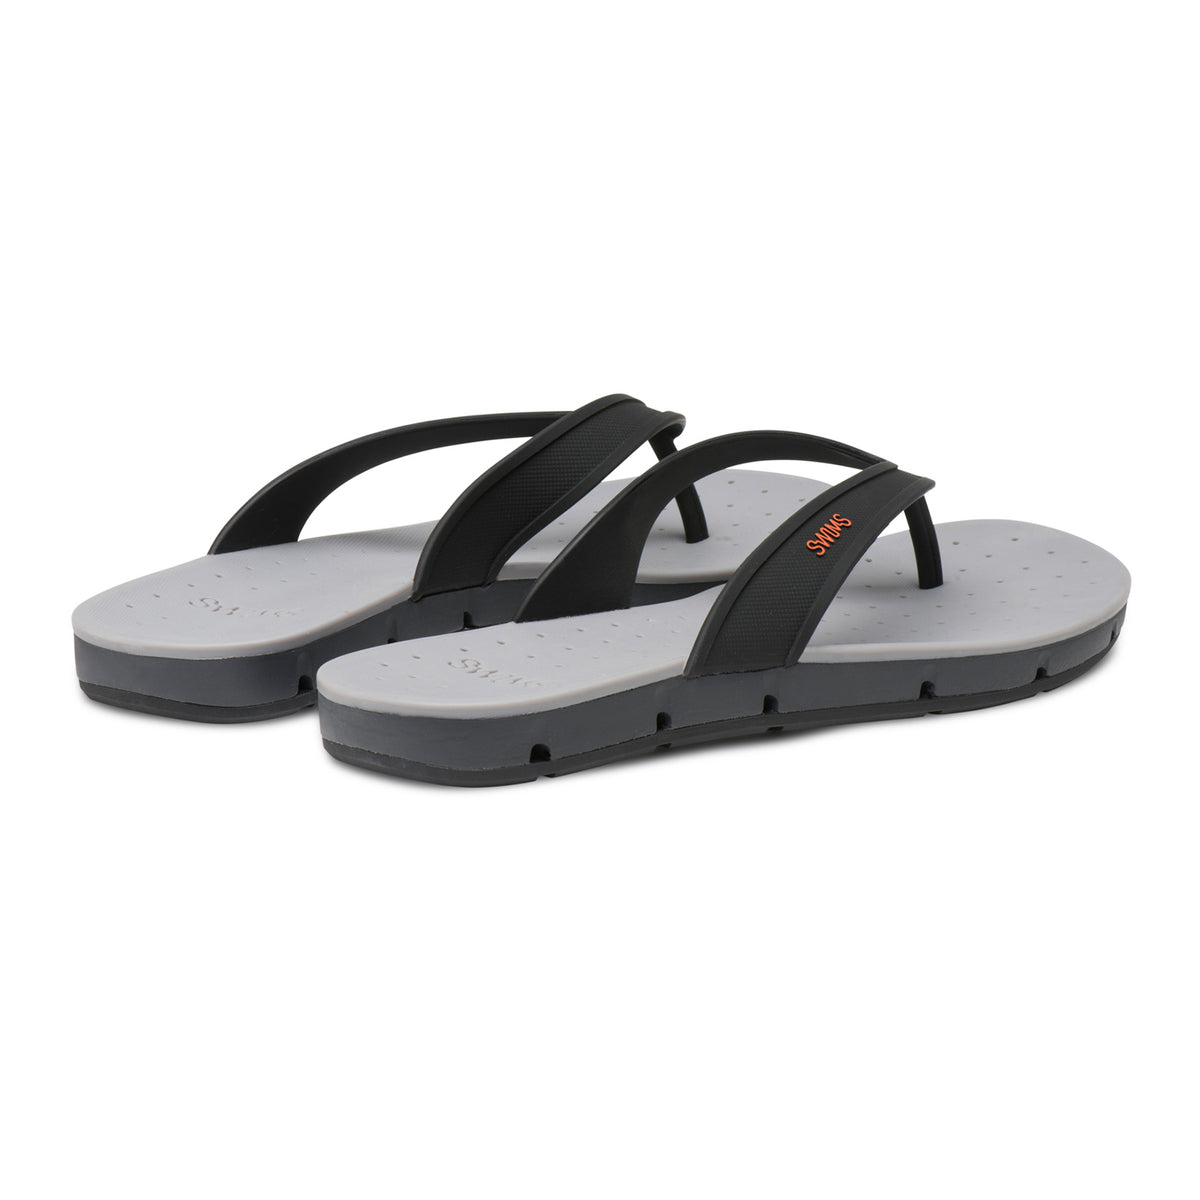 Breeze Thong Sandal - background::white,variant::Black/Graphite